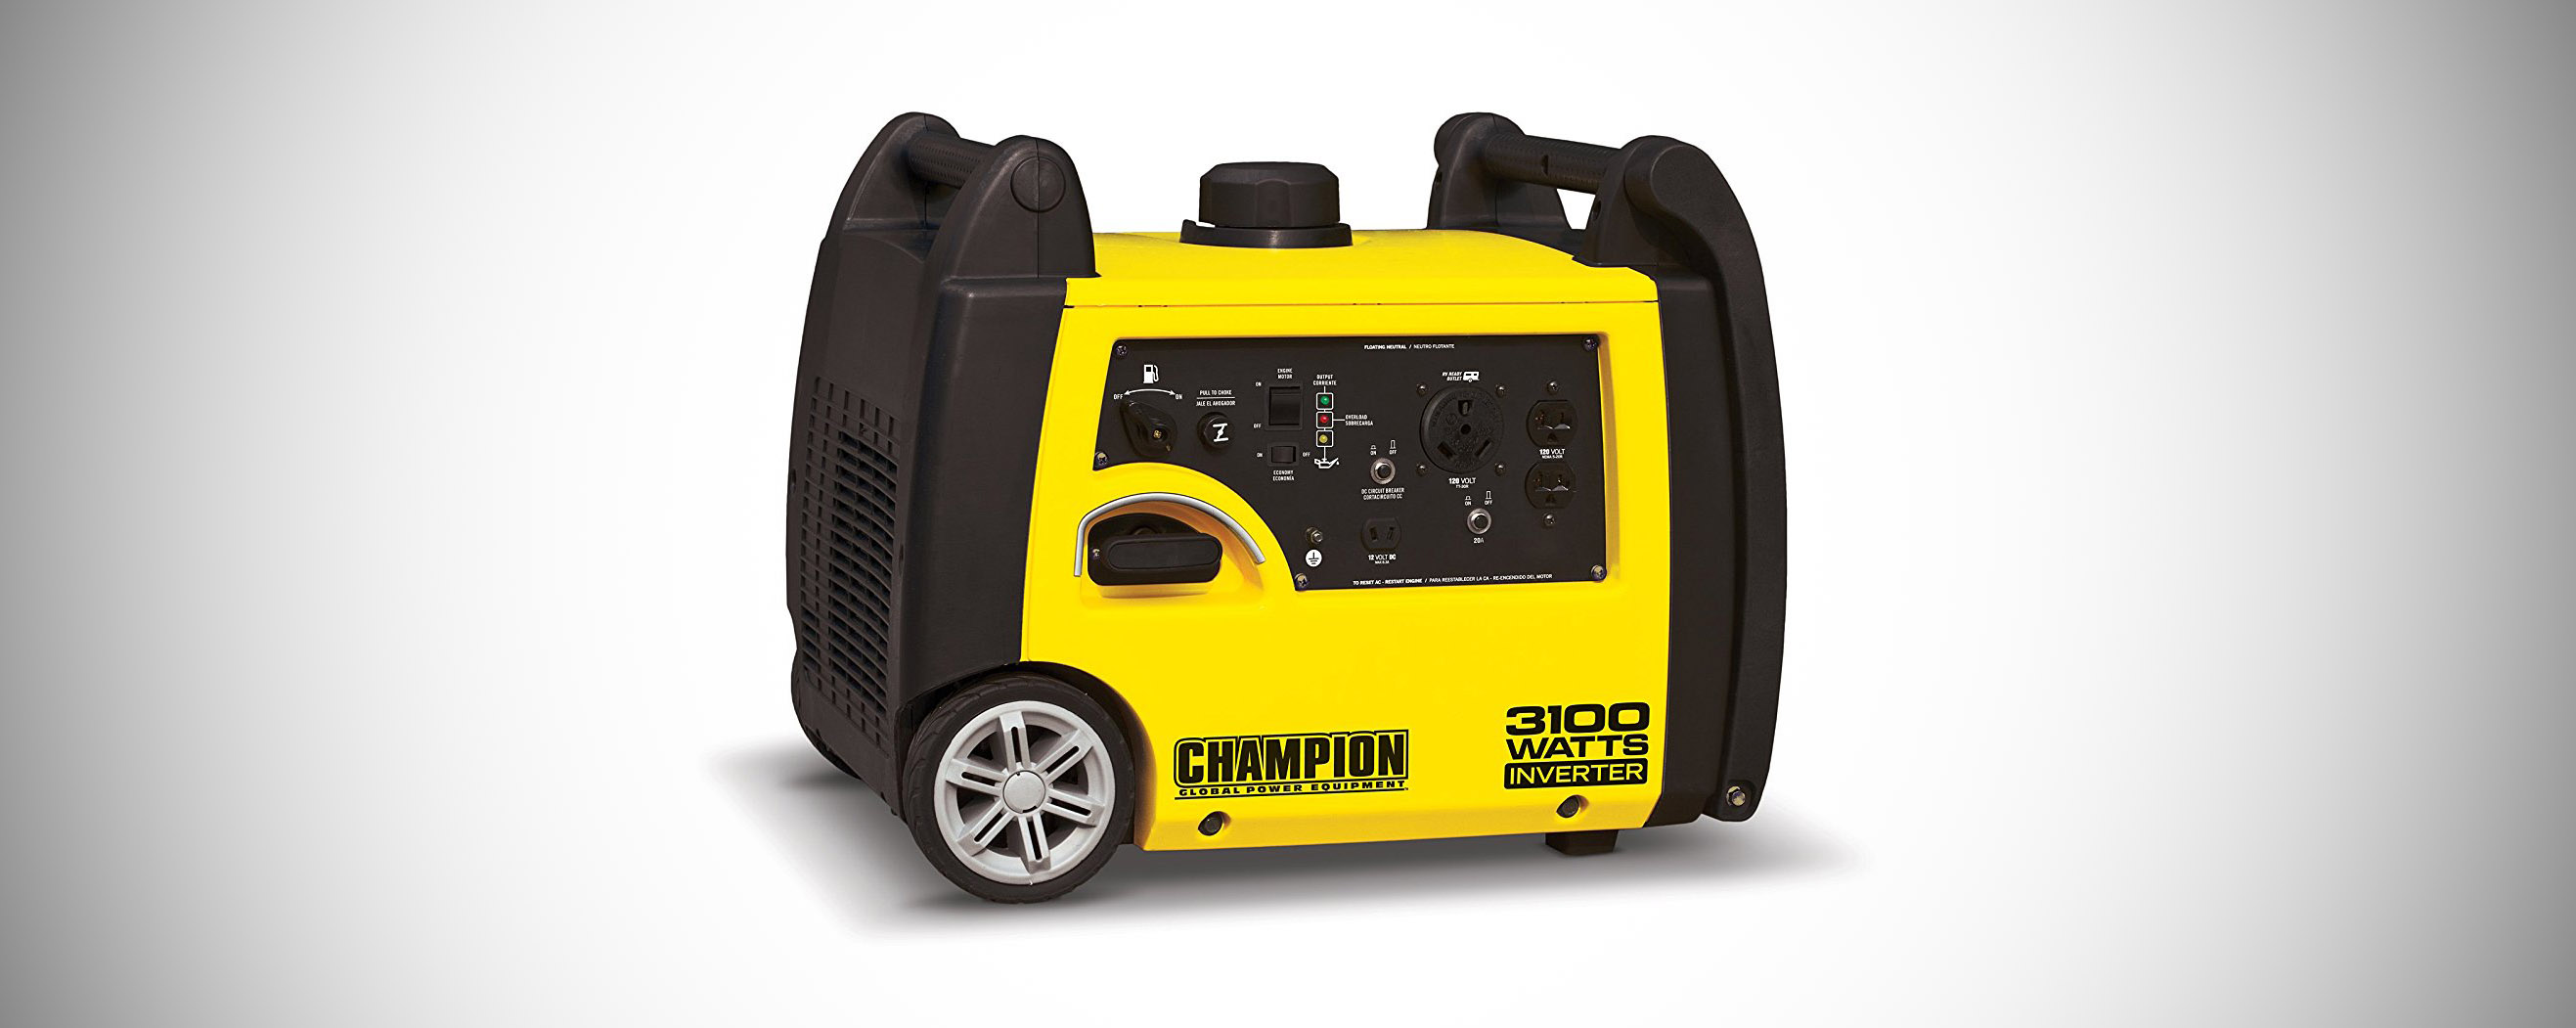 Champion 3100W Inverter Generator Reviews